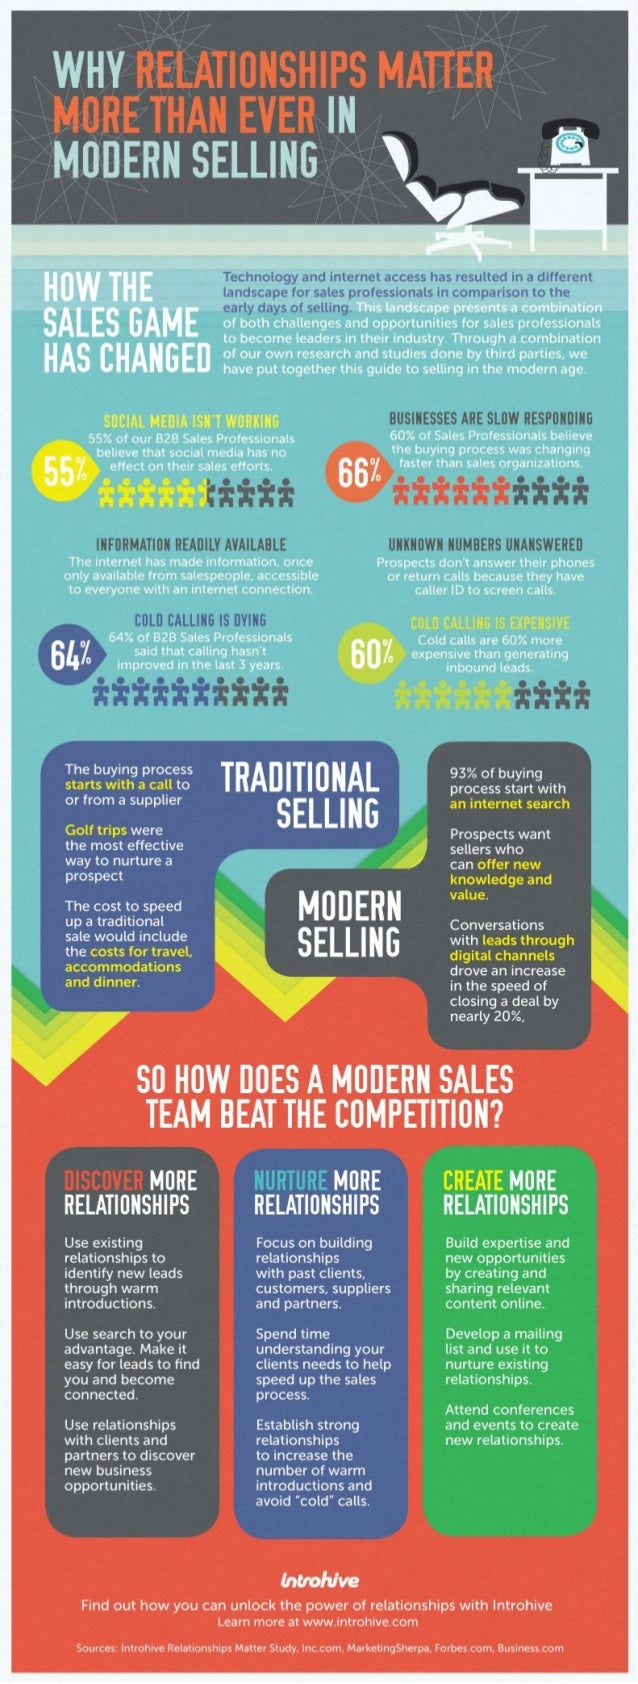 Why Relationships Matter in Modern Selling